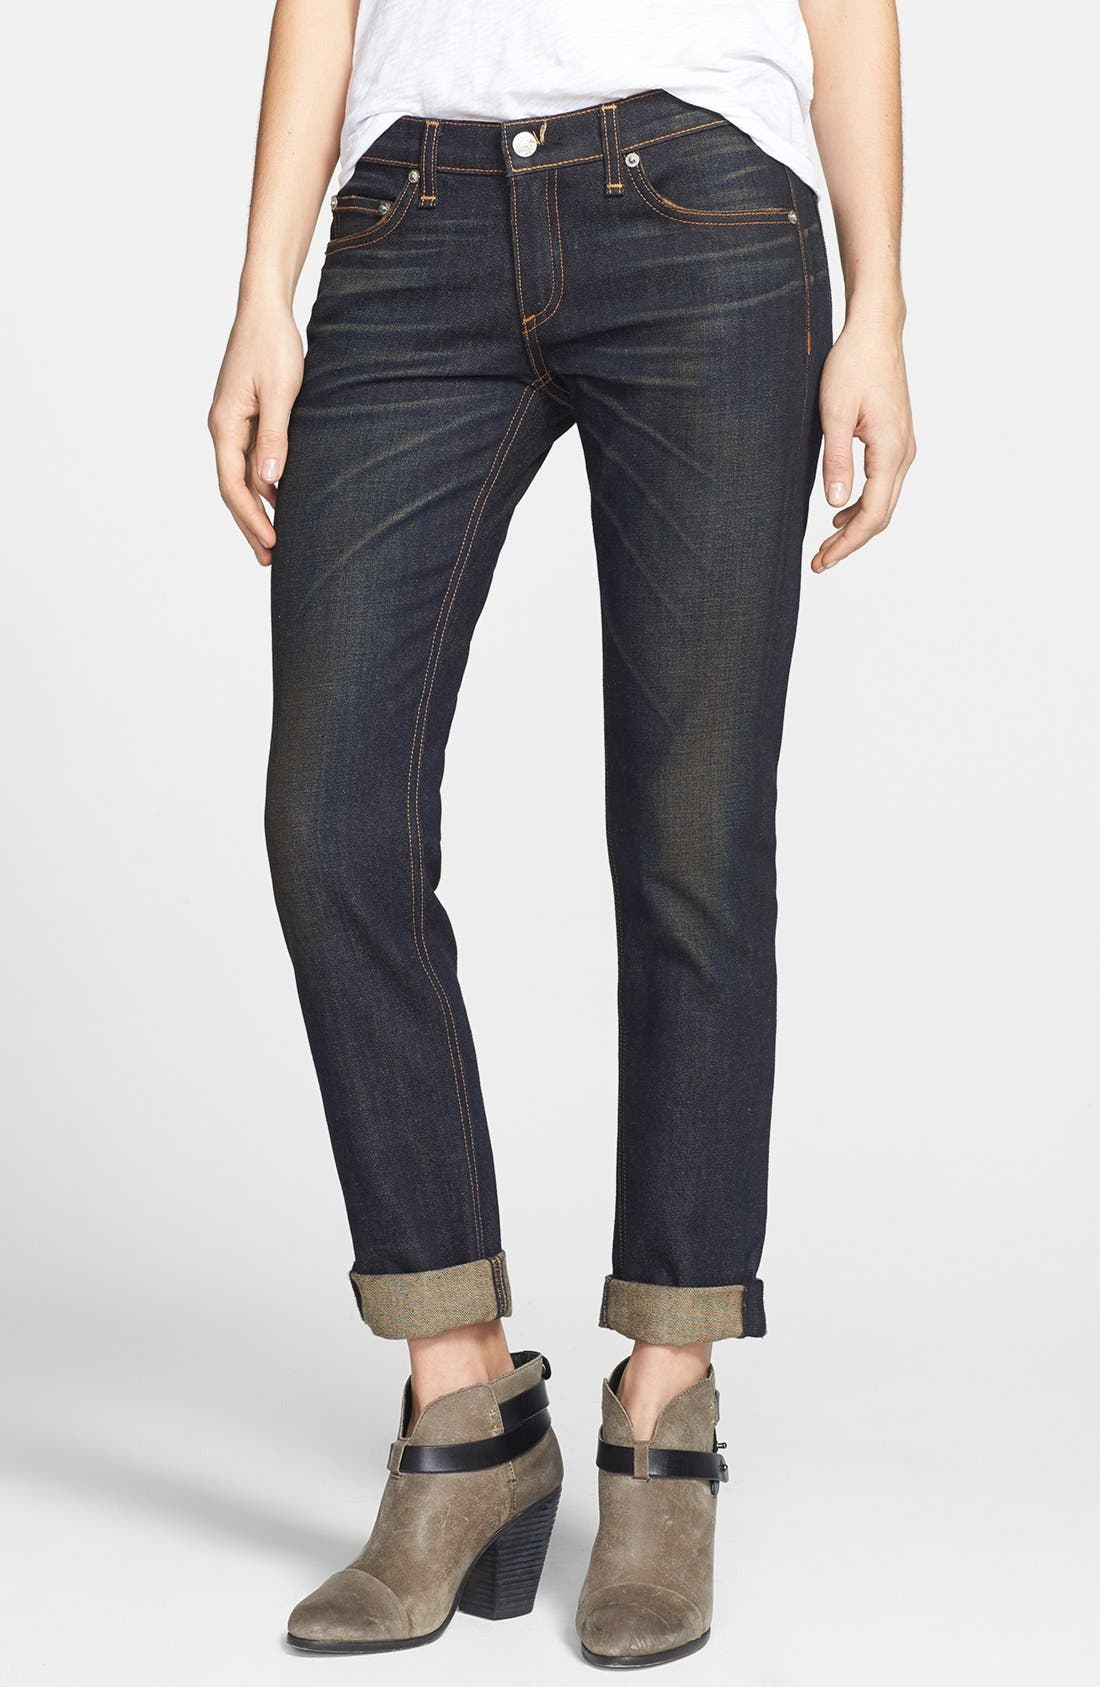 Alternate Image 1 Selected - rag & bone/JEAN 'The Dre' Slim Fit Boyfriend Jeans (Charing)